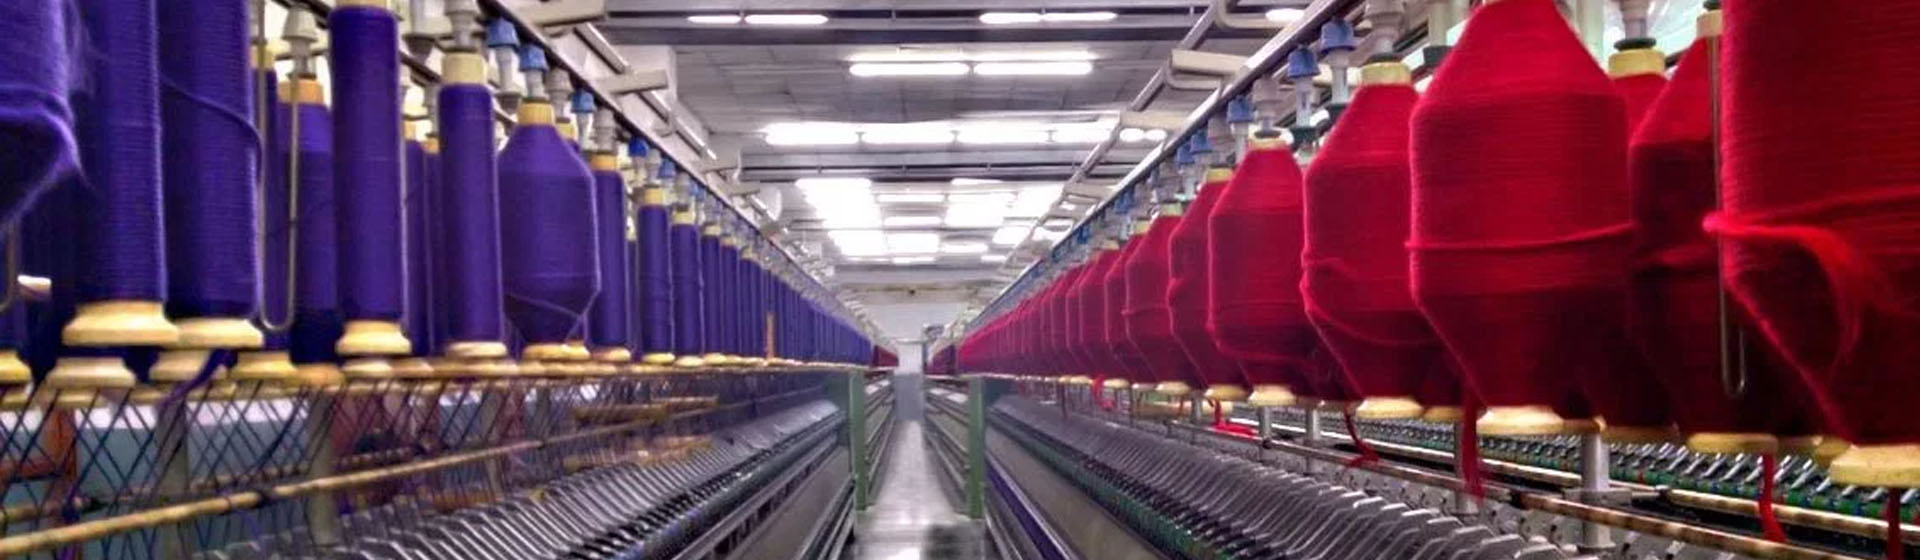 Textile spinning machinery